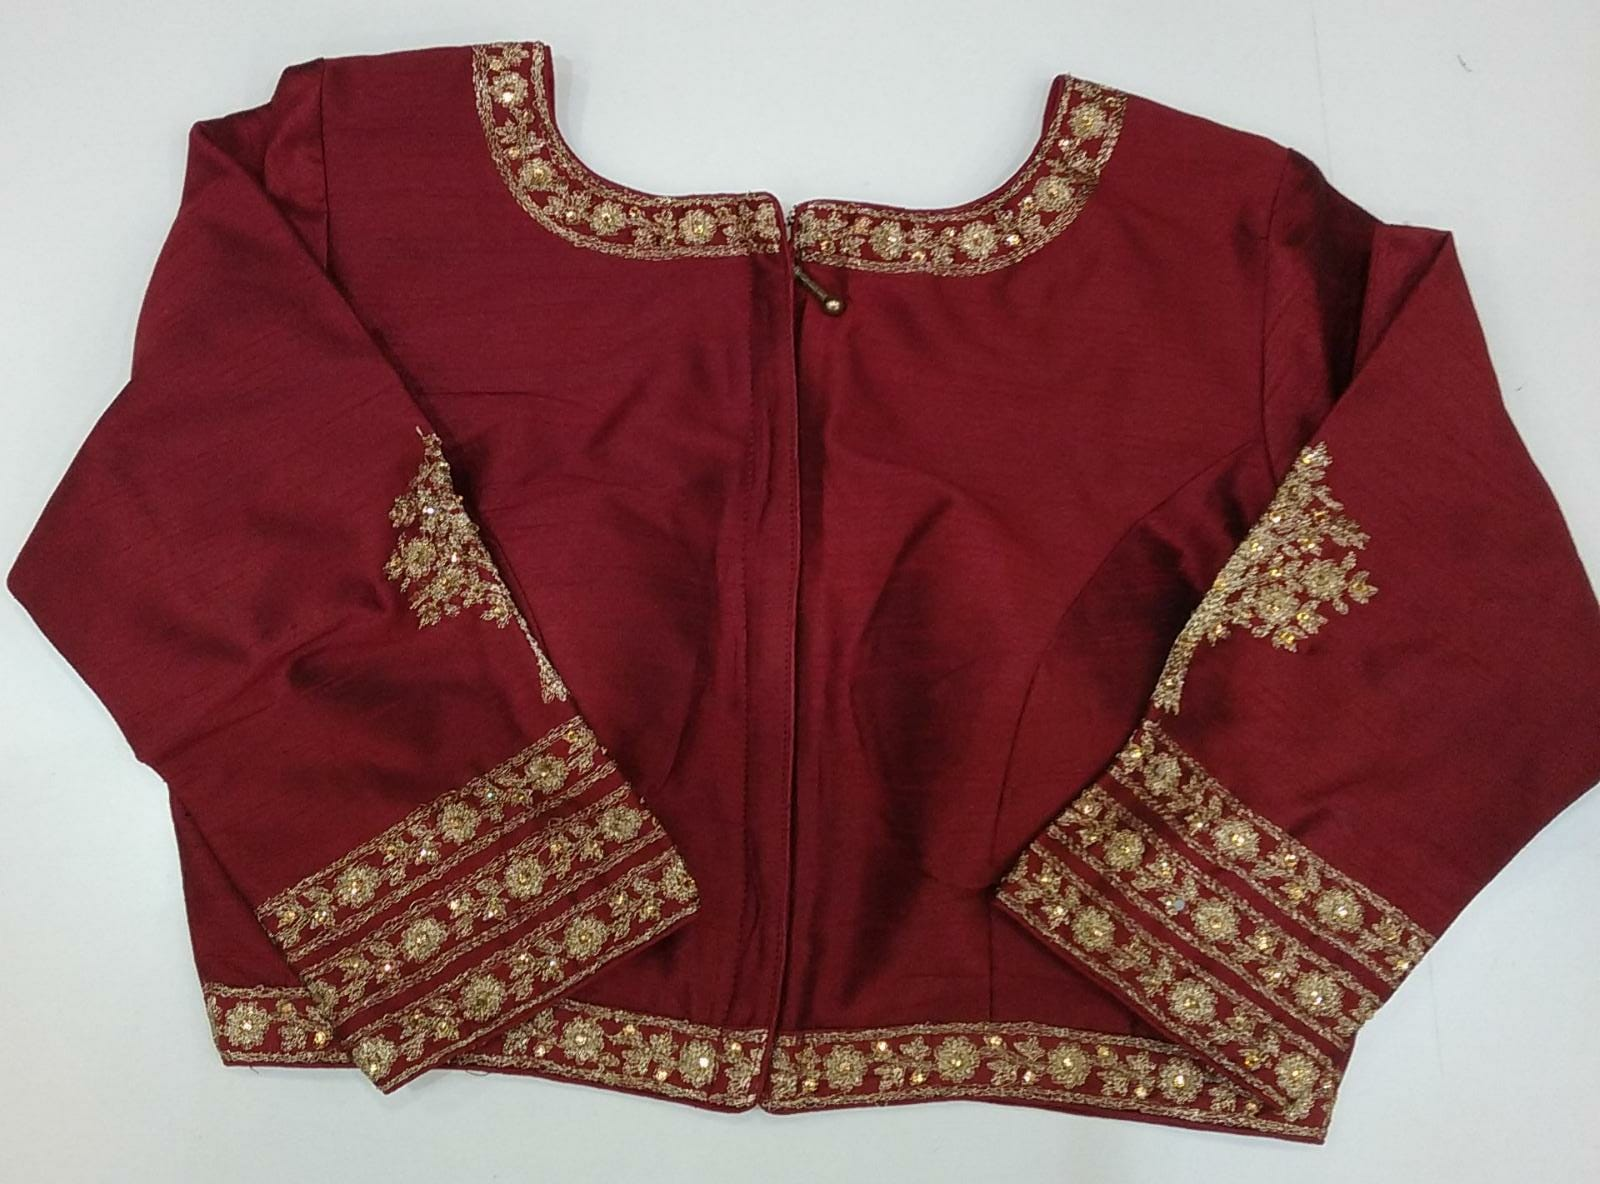 160574 $57.00 MARRON FANCY LONG SLEEVE SAREE BLOUSE SIZE 38